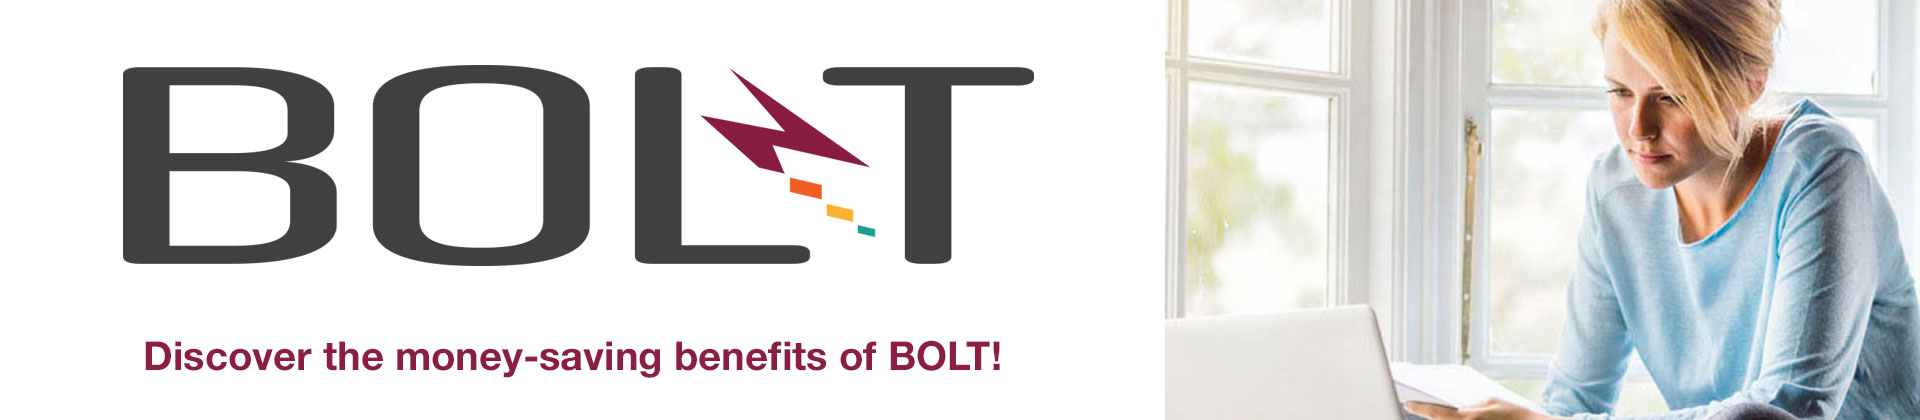 Discover the money-saving benefits of BOLT!